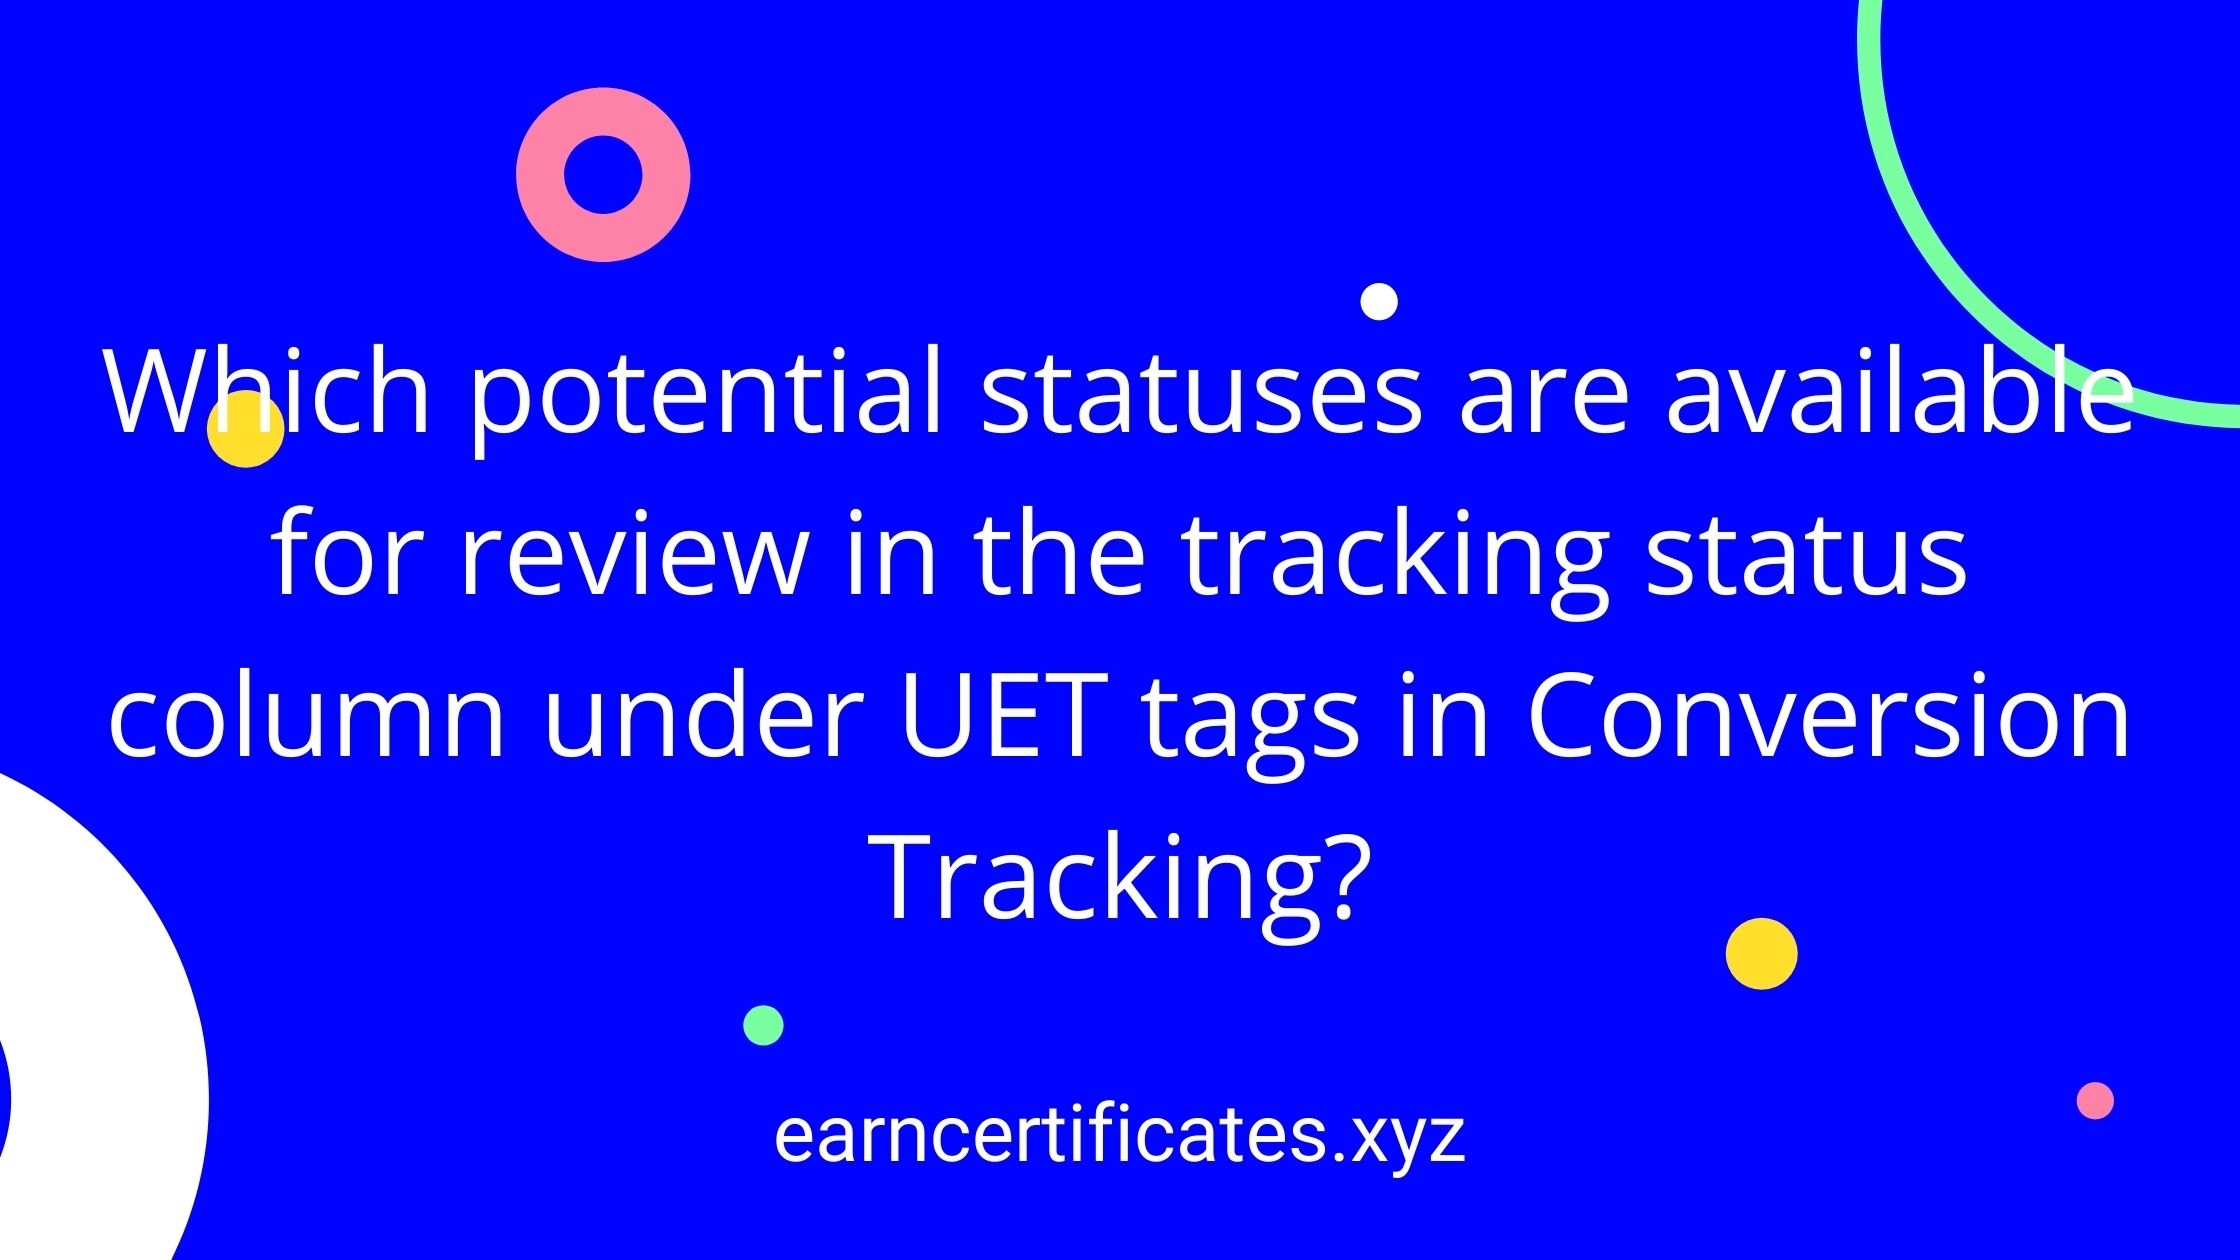 Which potential statuses are available for review in the tracking status column under UET tags in Conversion Tracking?